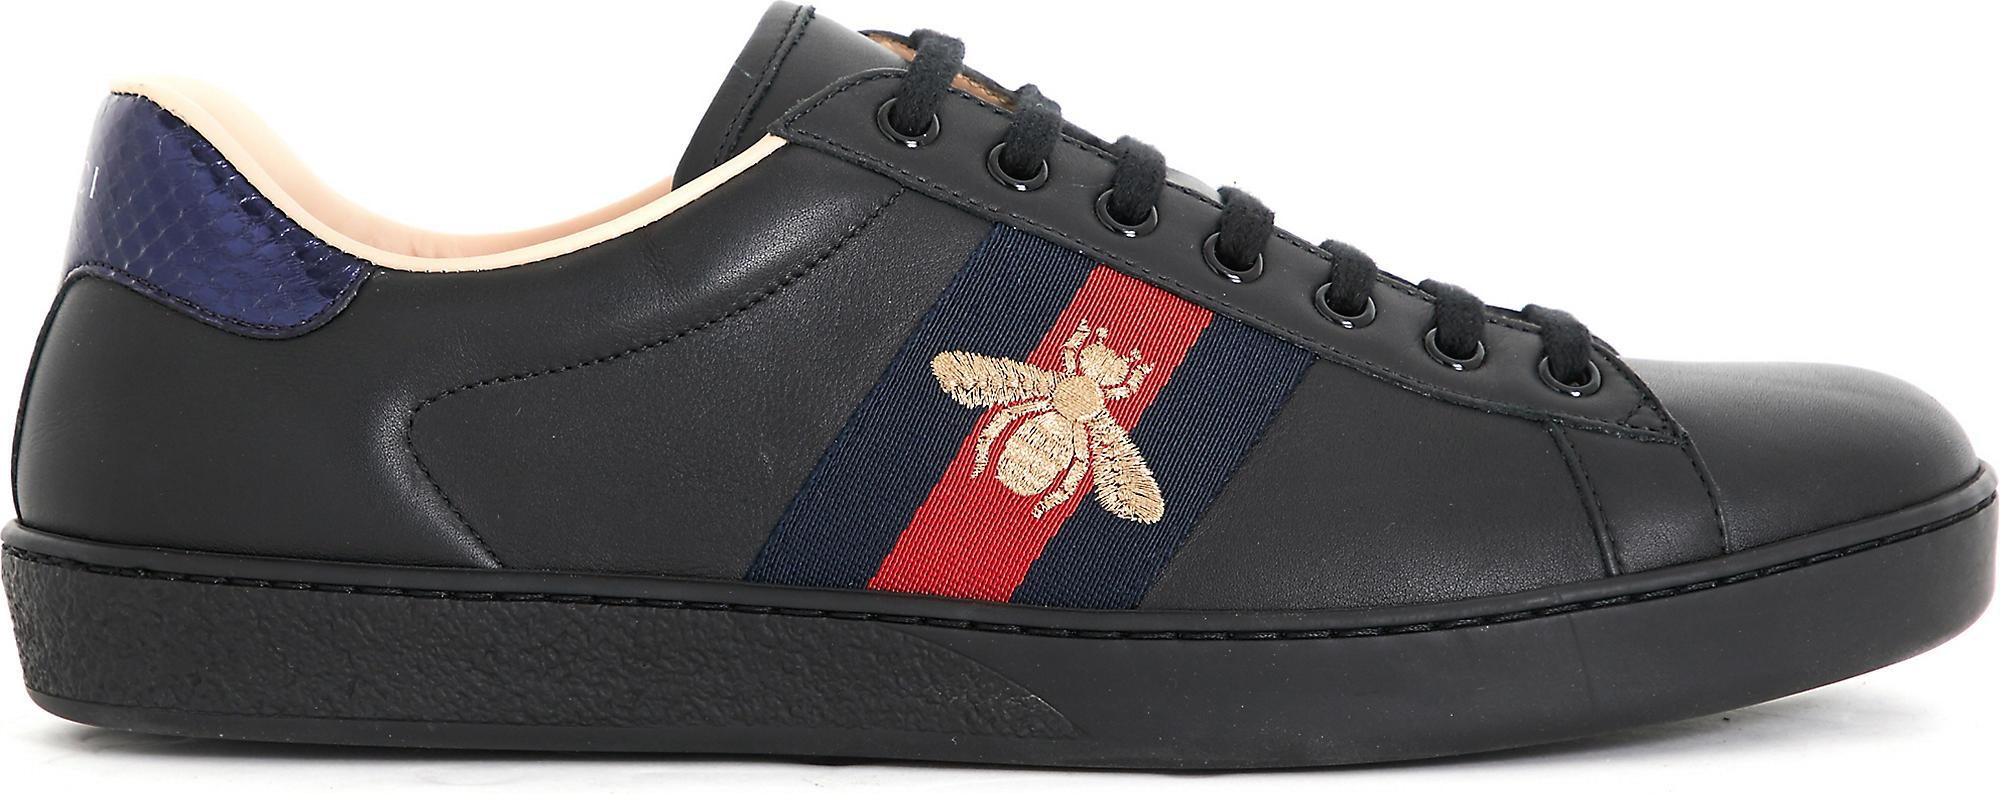 a66a659df96 Lyst - Gucci Ace Embroidered Bee Leather Low-top Trainers in Black ...